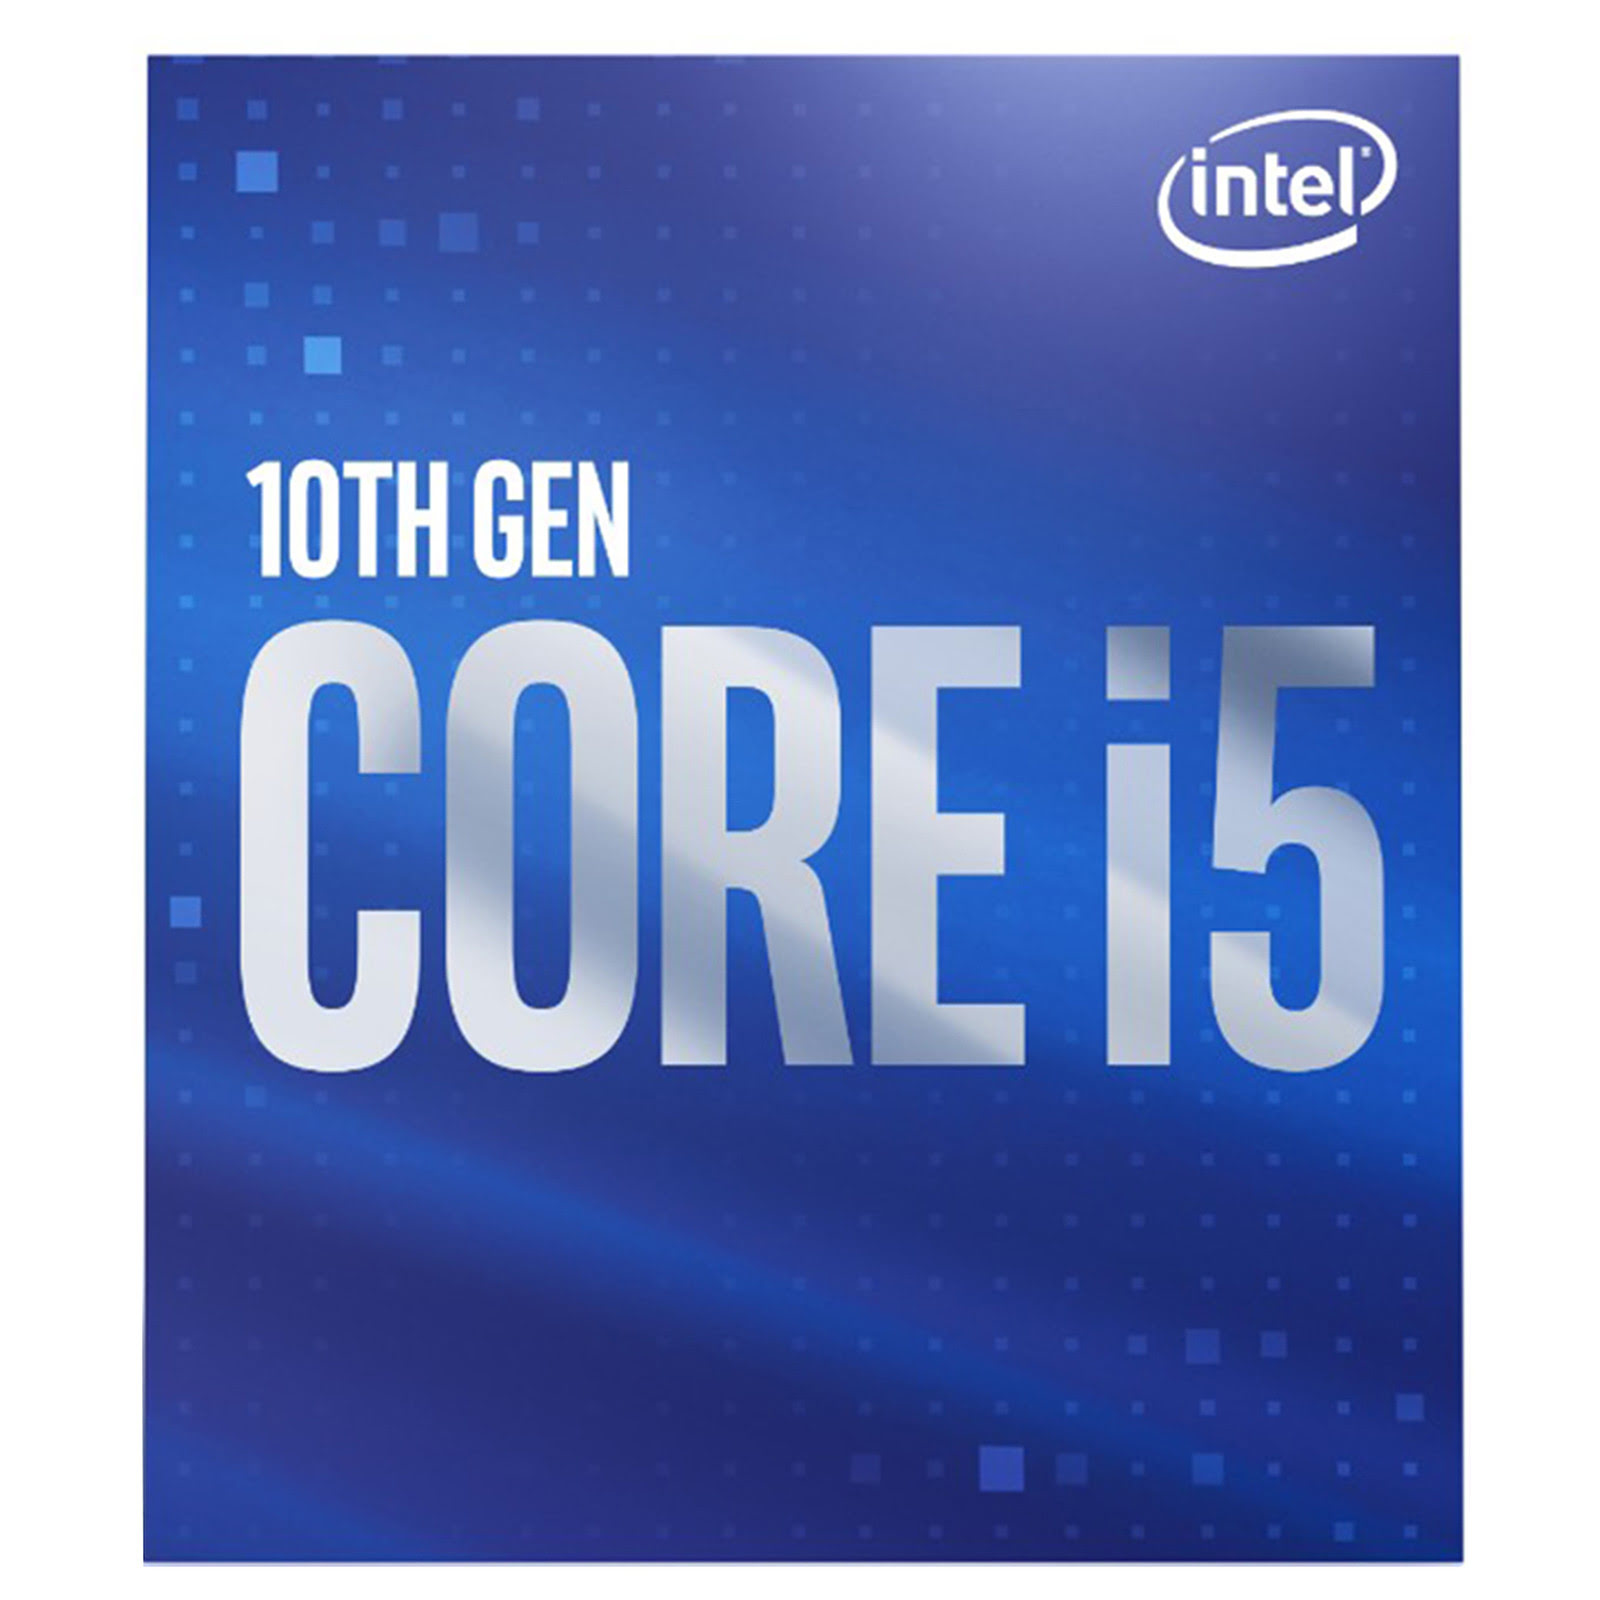 Intel Core i5-10400 - 2.9GHz - Processeur Intel - Cybertek.fr - 2